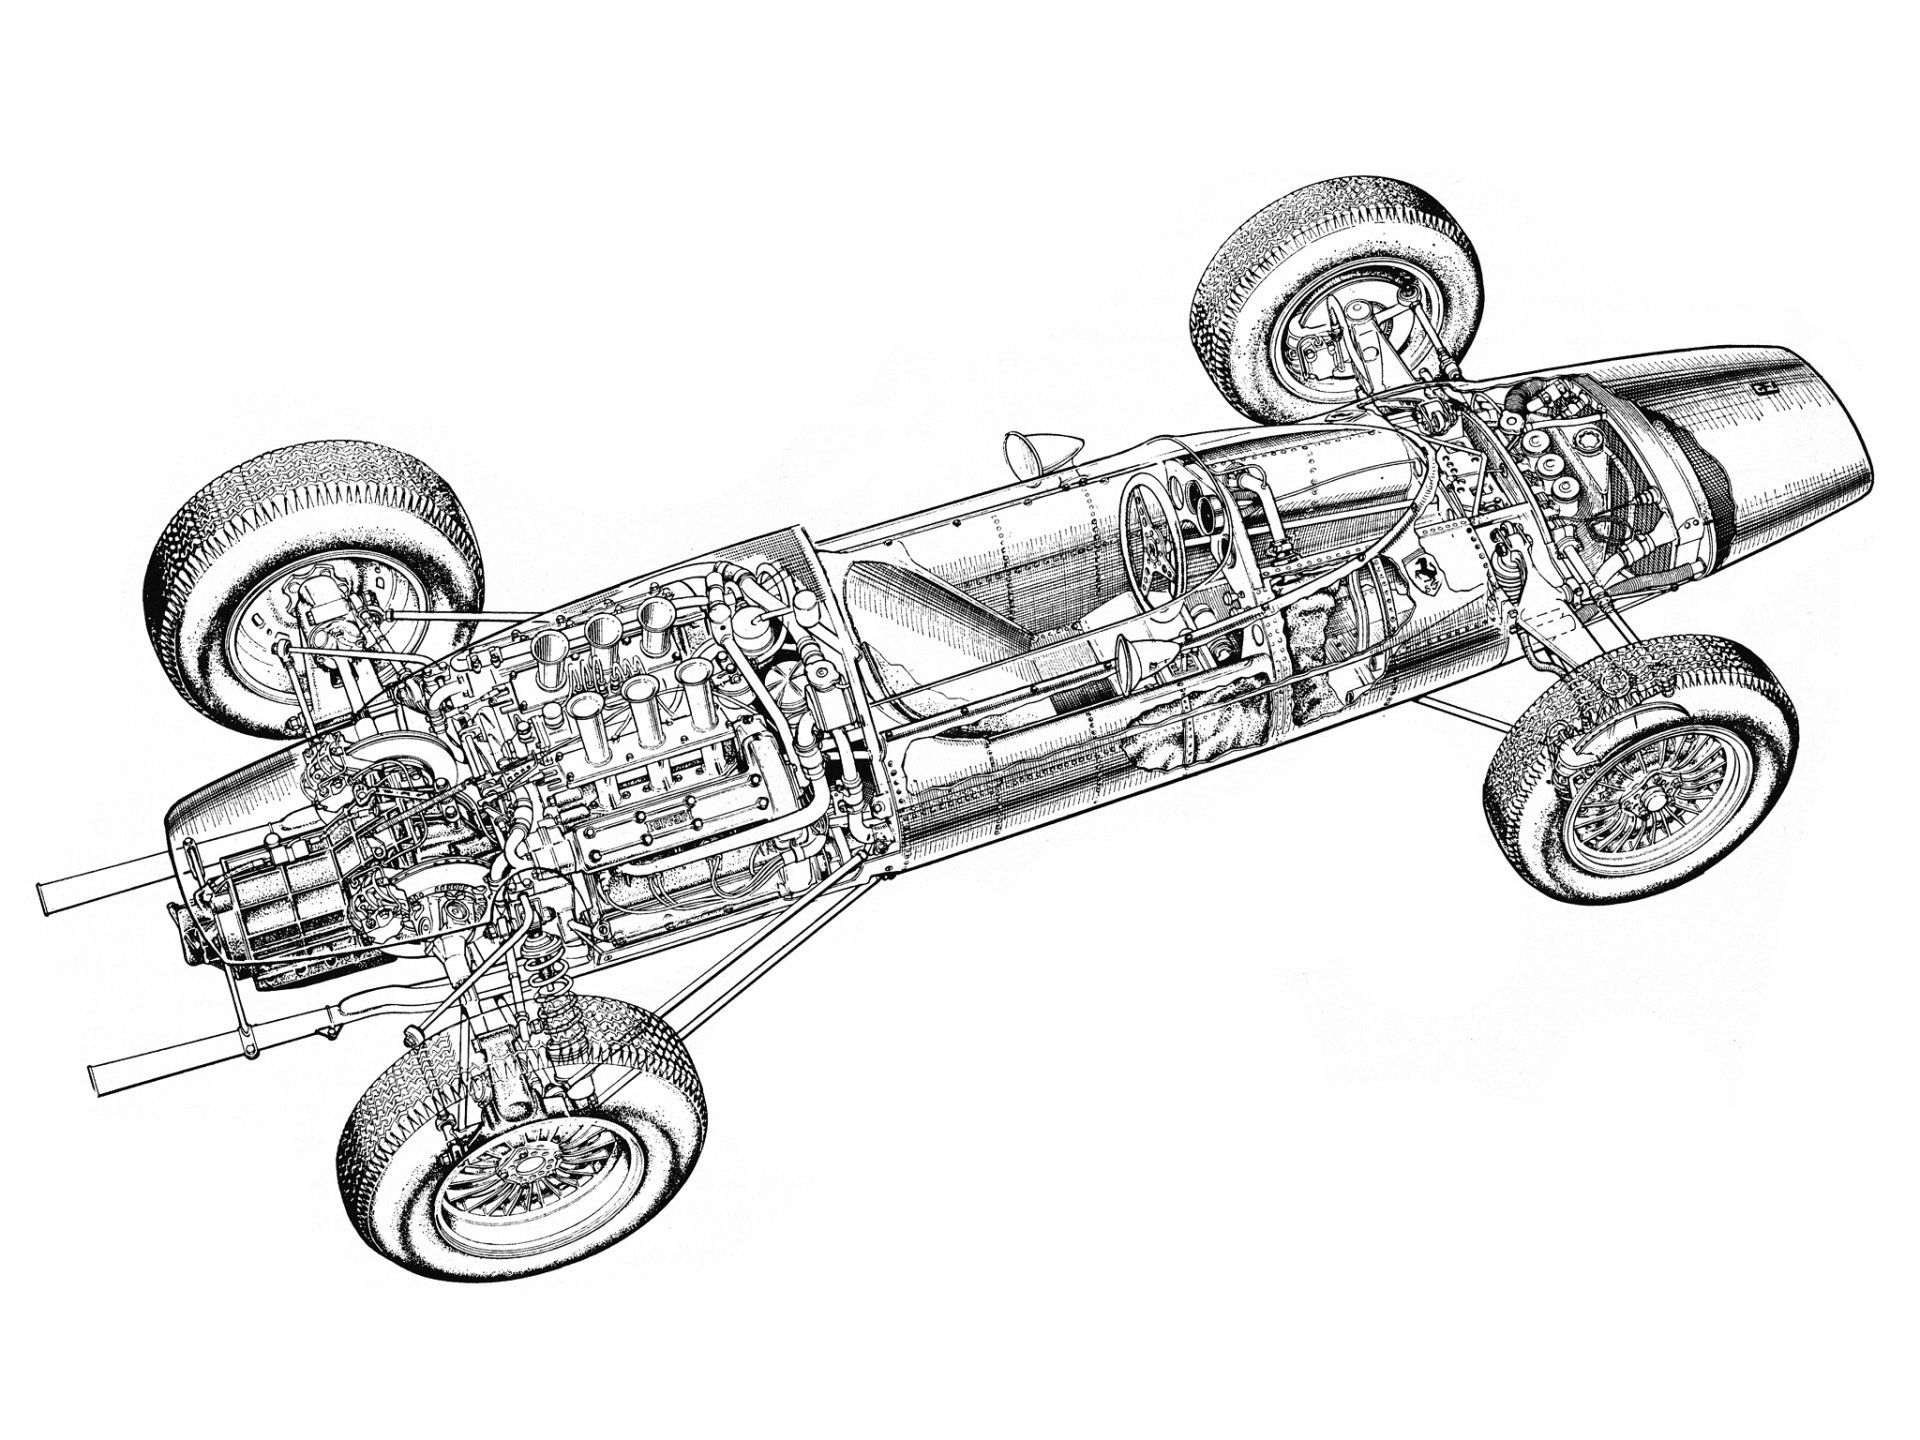 Ferrari 330p4 Smcarsnet Car Blueprints Forum T